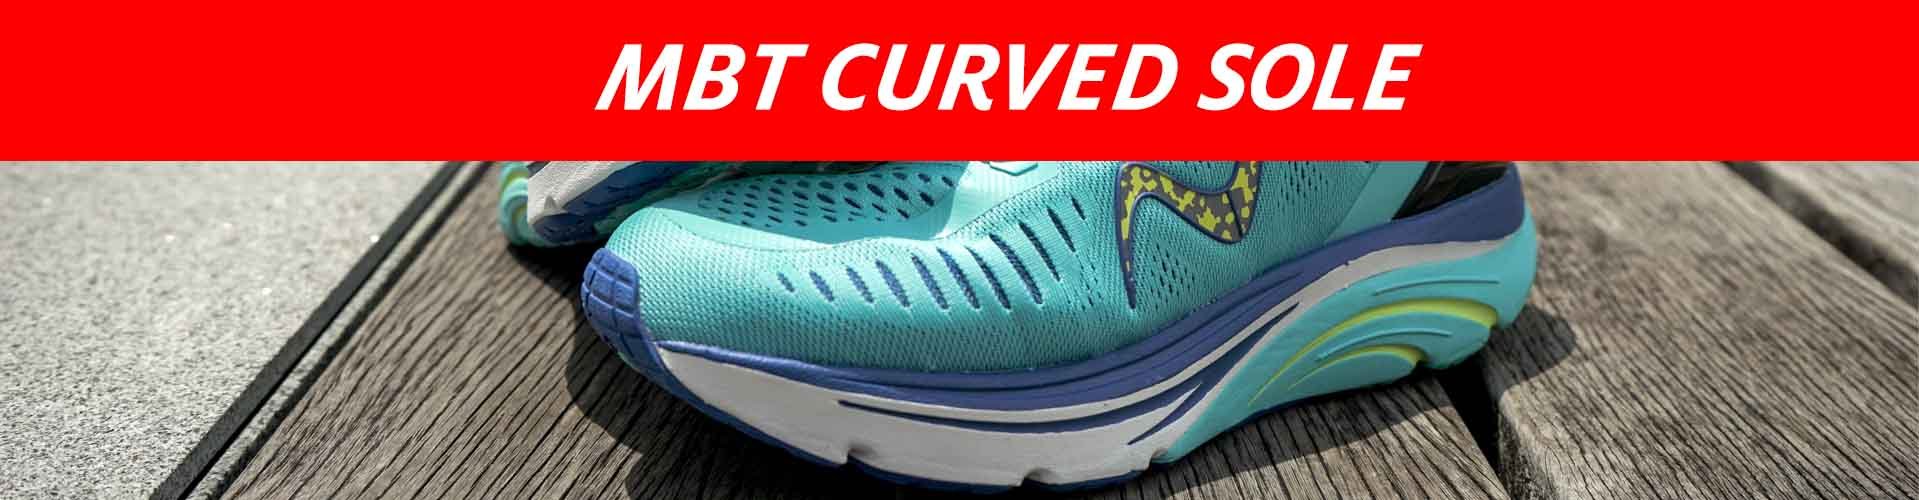 MBT Patented Curved Sole